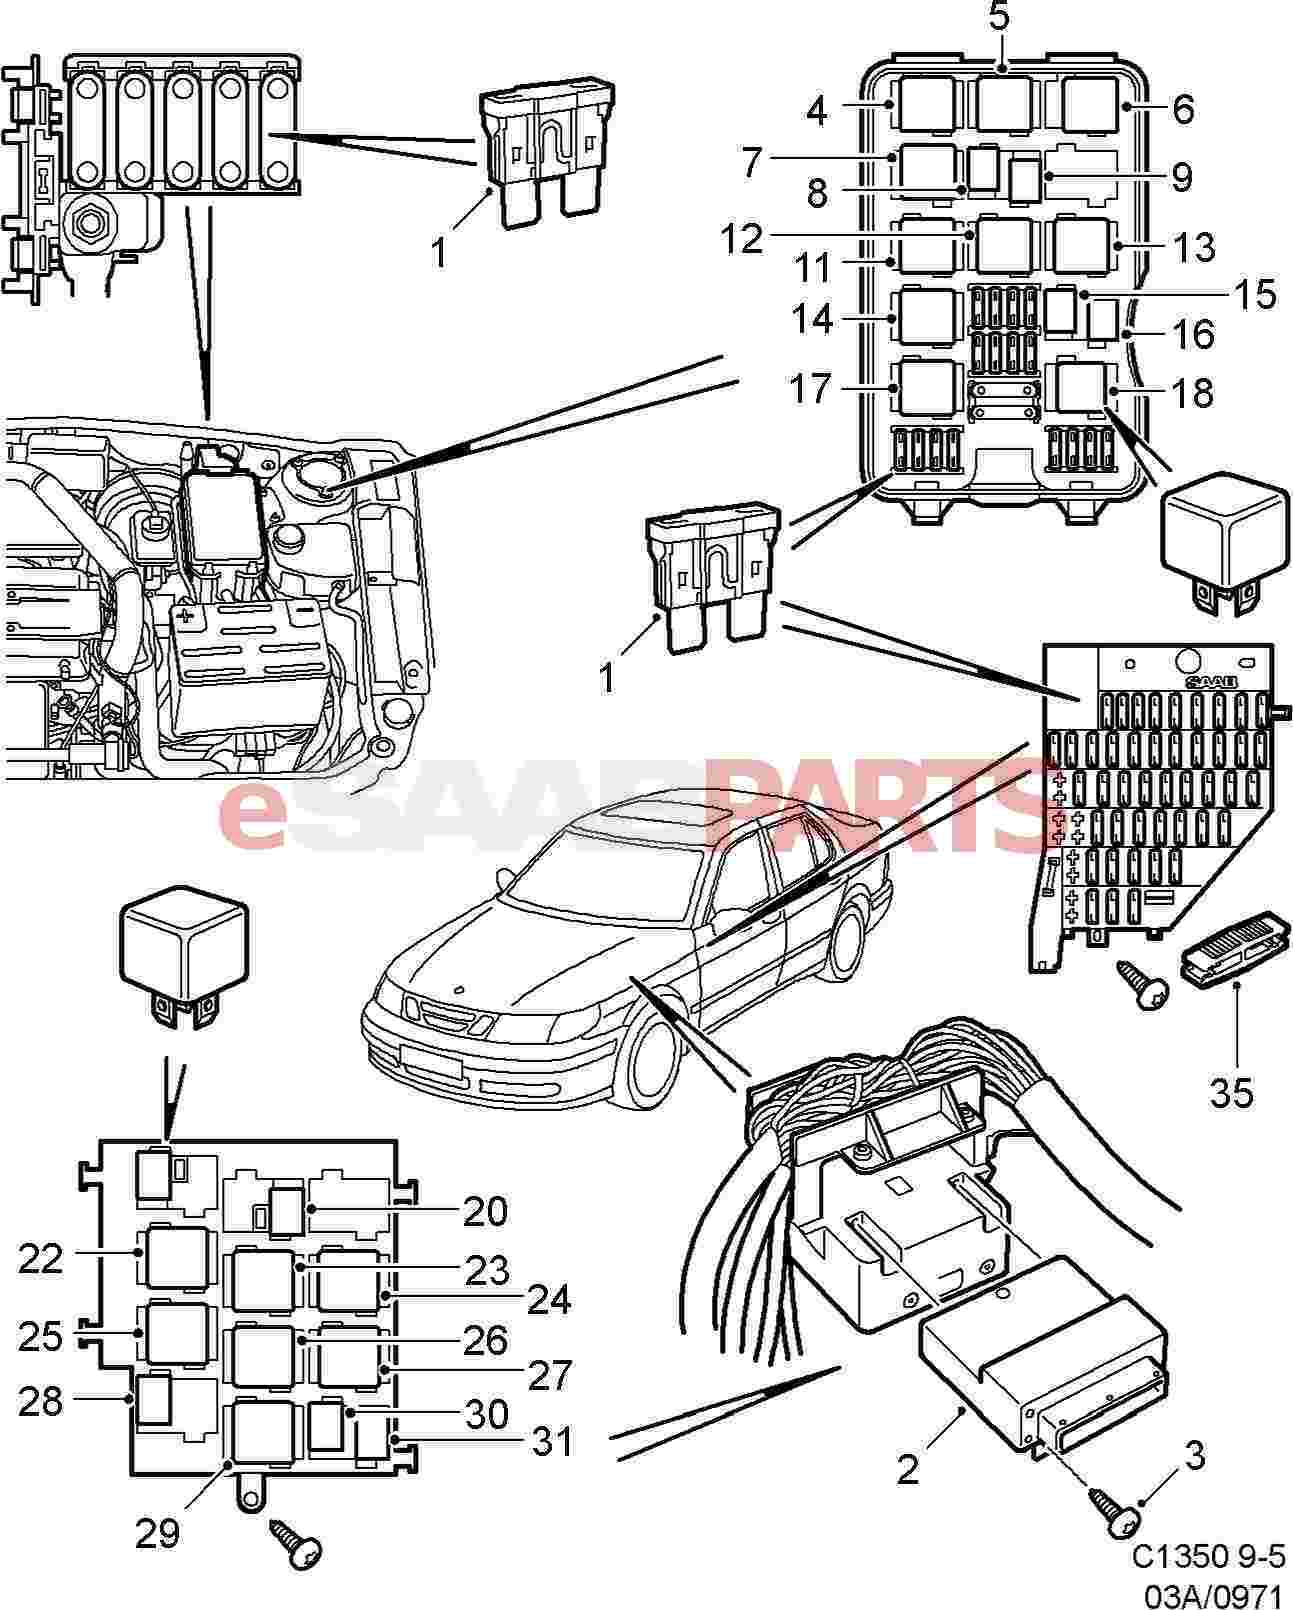 Saab Fuse Box Diagram Auto Genius 2004 9 3 Linear